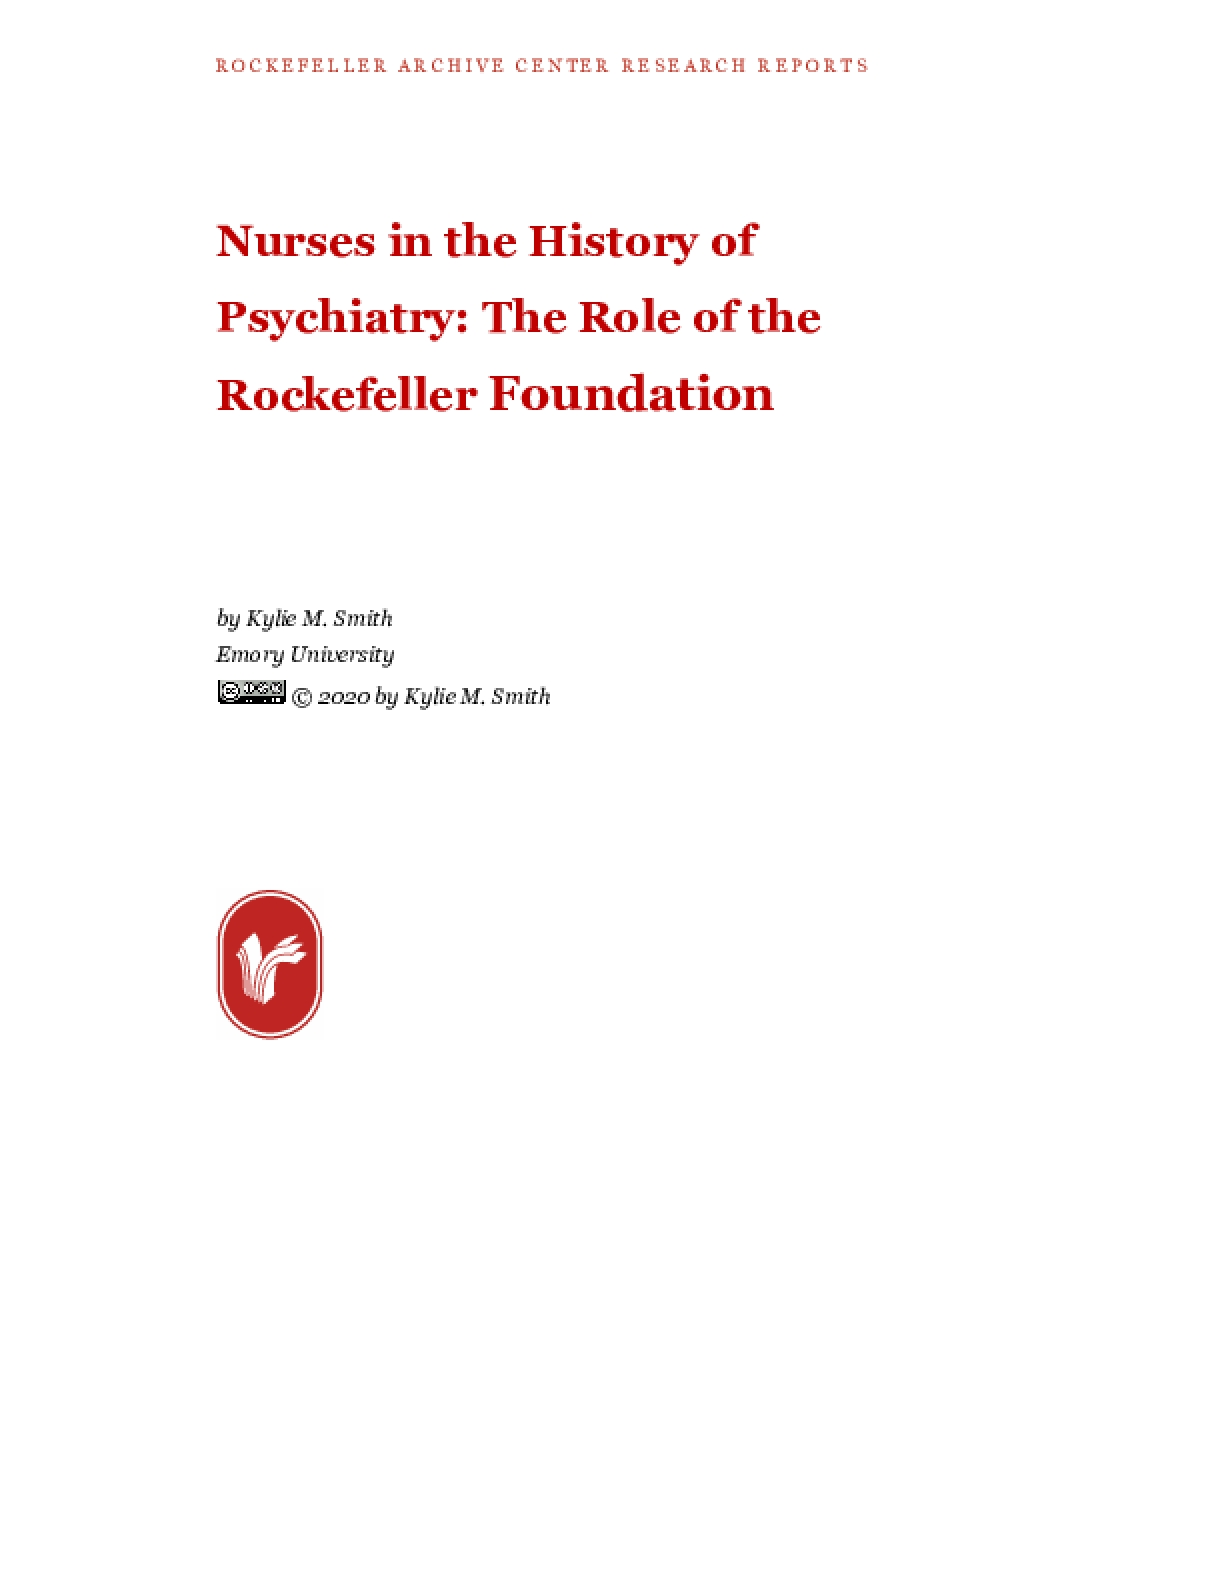 Nurses in the History of Psychiatry: The Role of the Rockefeller Foundation